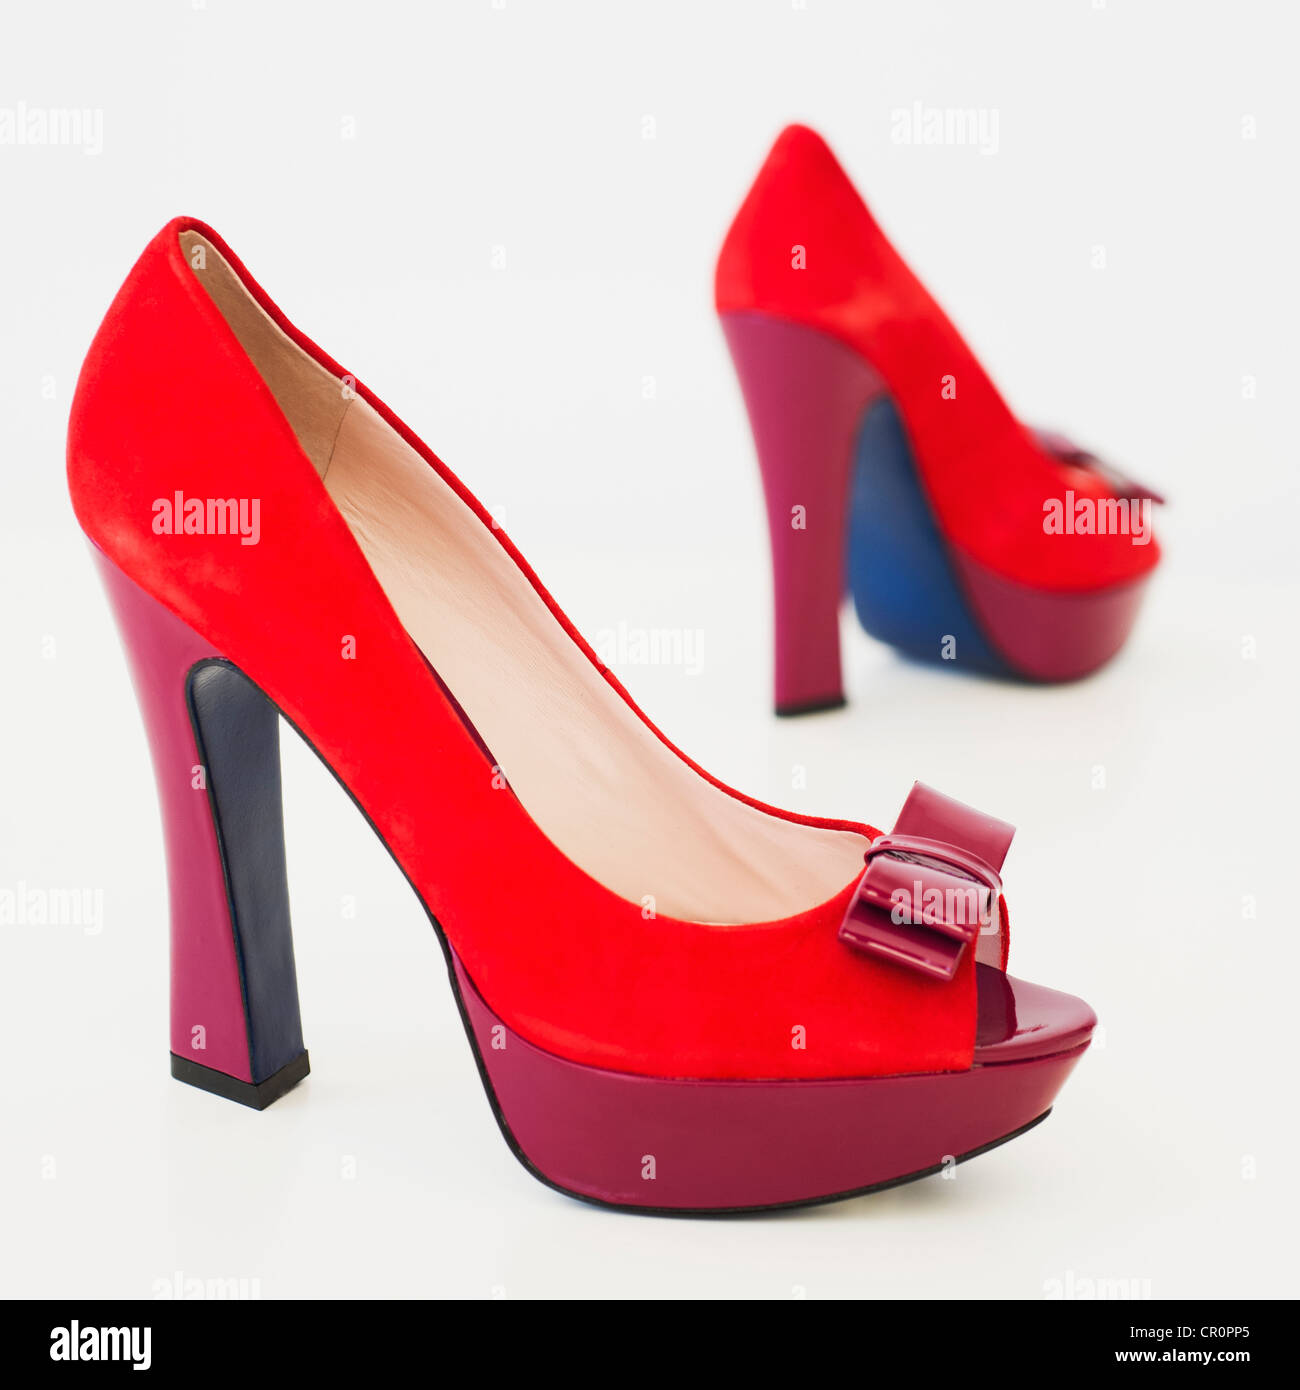 cb2472777af Purple High Heels Stock Photos & Purple High Heels Stock Images - Alamy